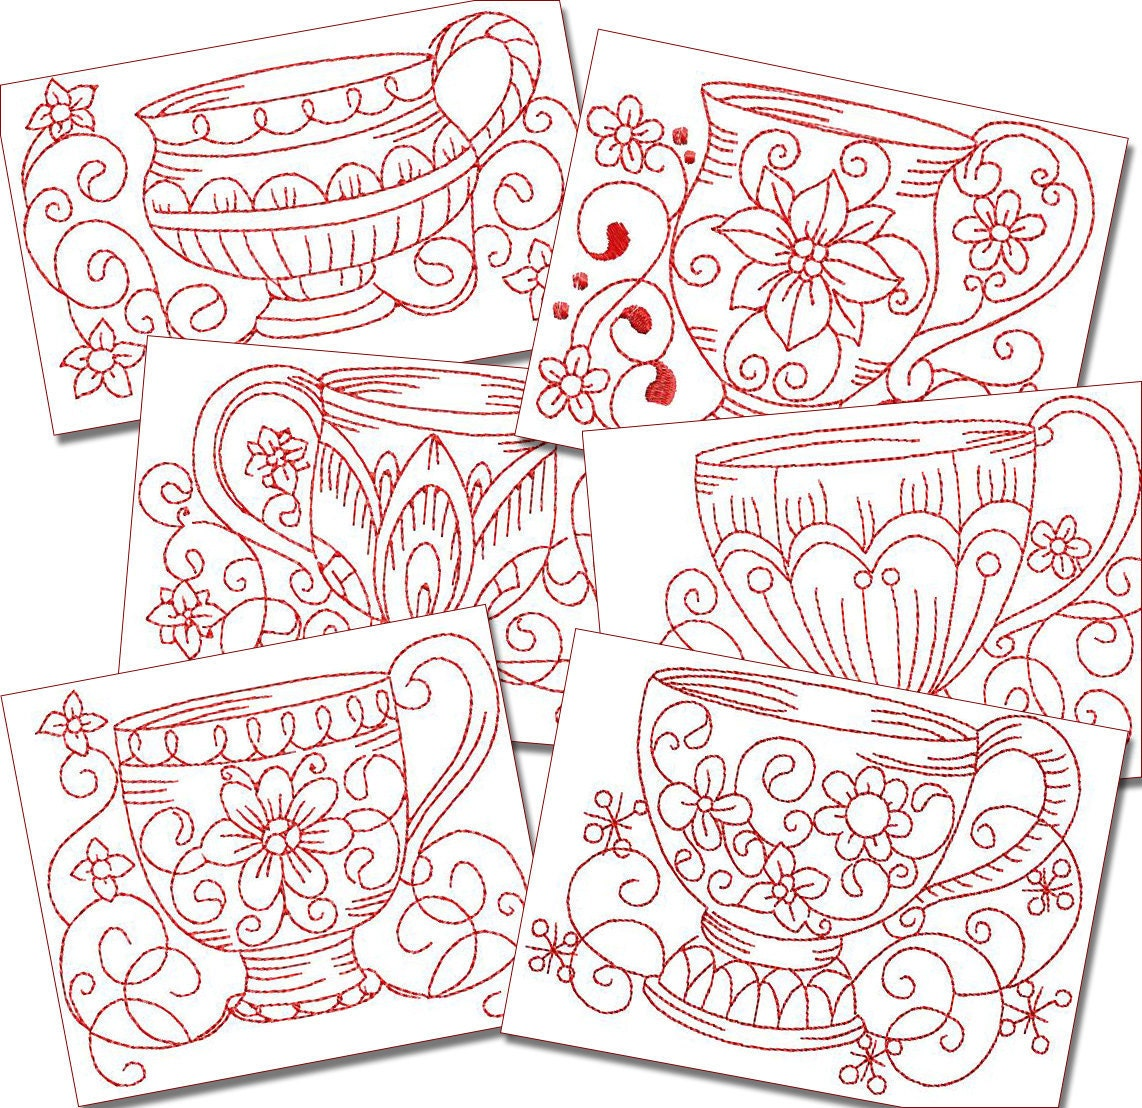 Redwork teacups machine embroidery patterns by